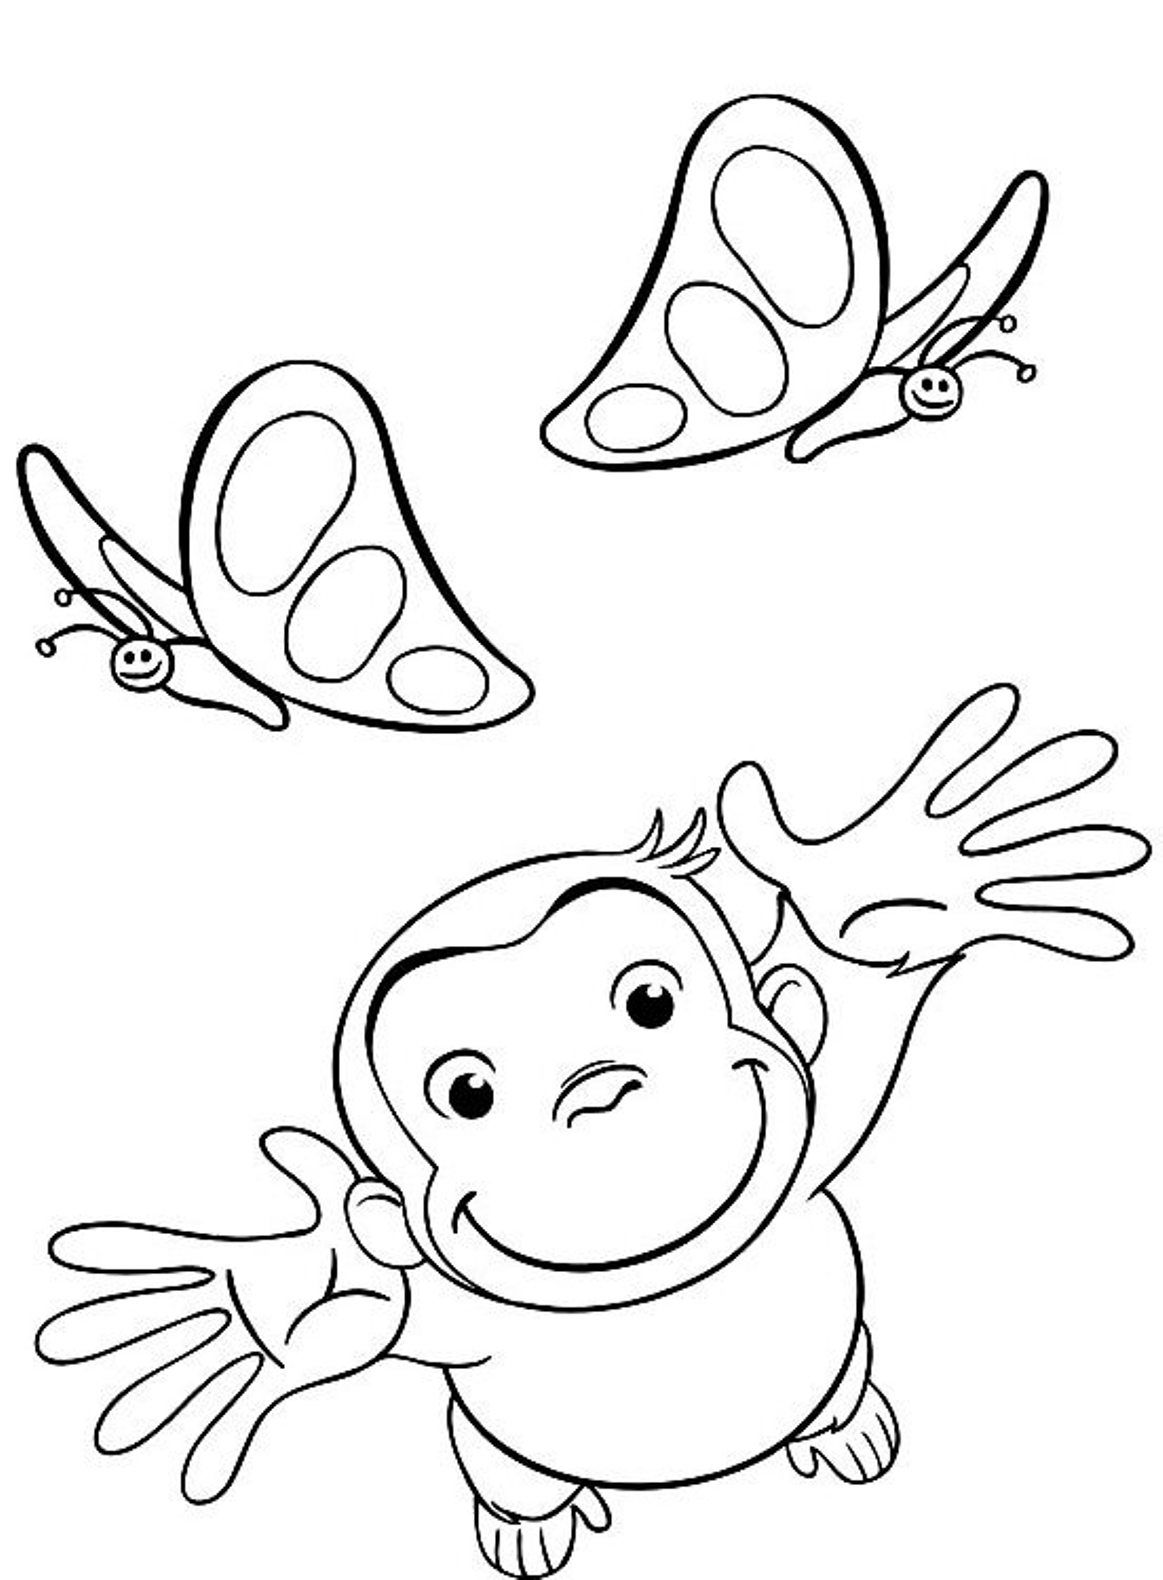 Pin By Heather Baldwin On Coloring Curious George Coloring Pages